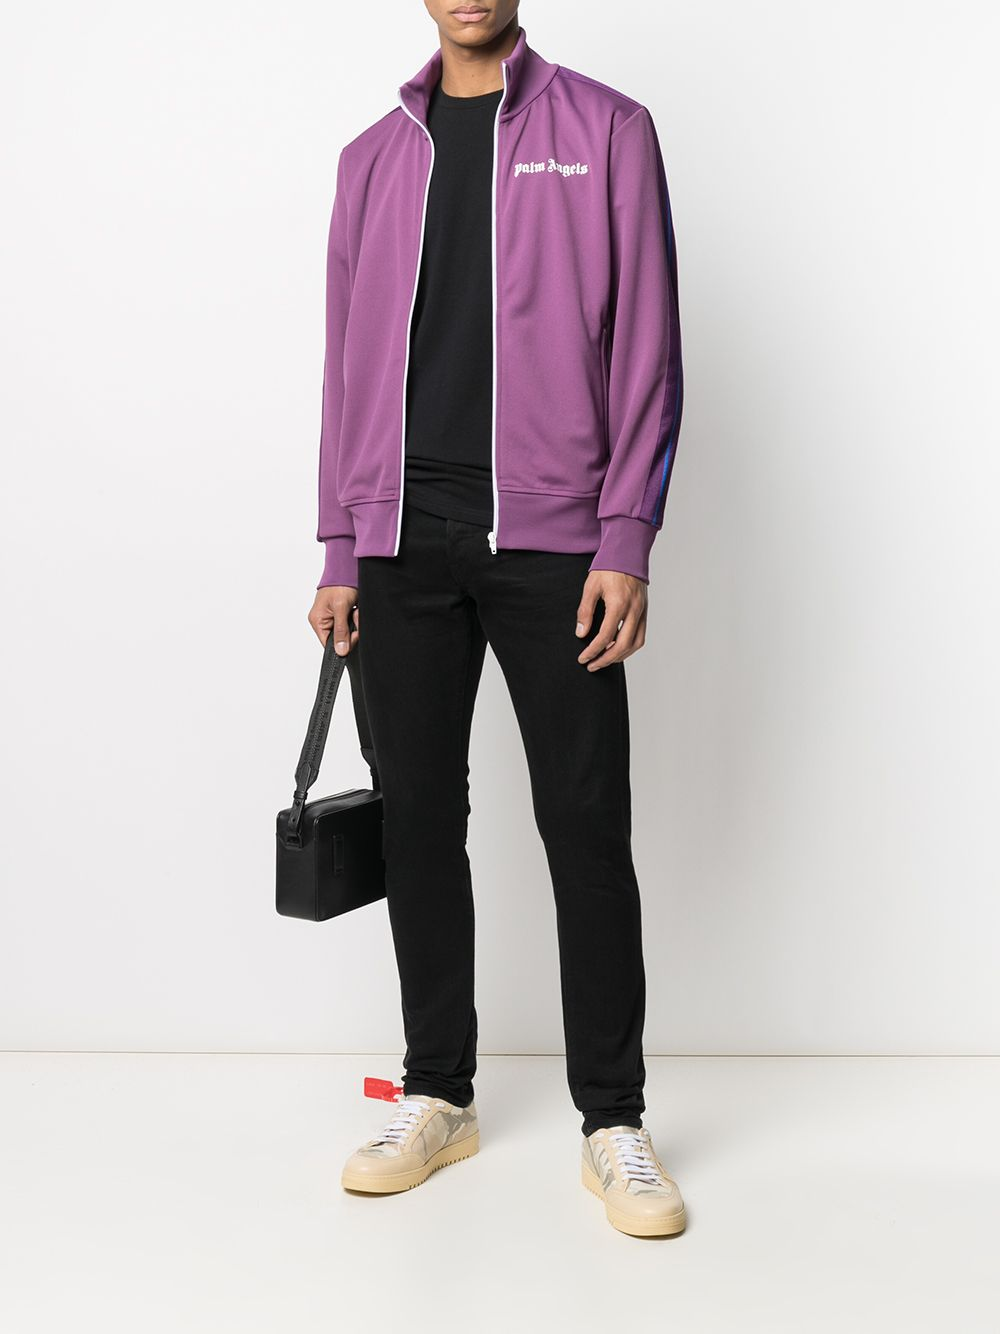 PALM ANGELS Logo Track Jacket Purple - Maison De Fashion